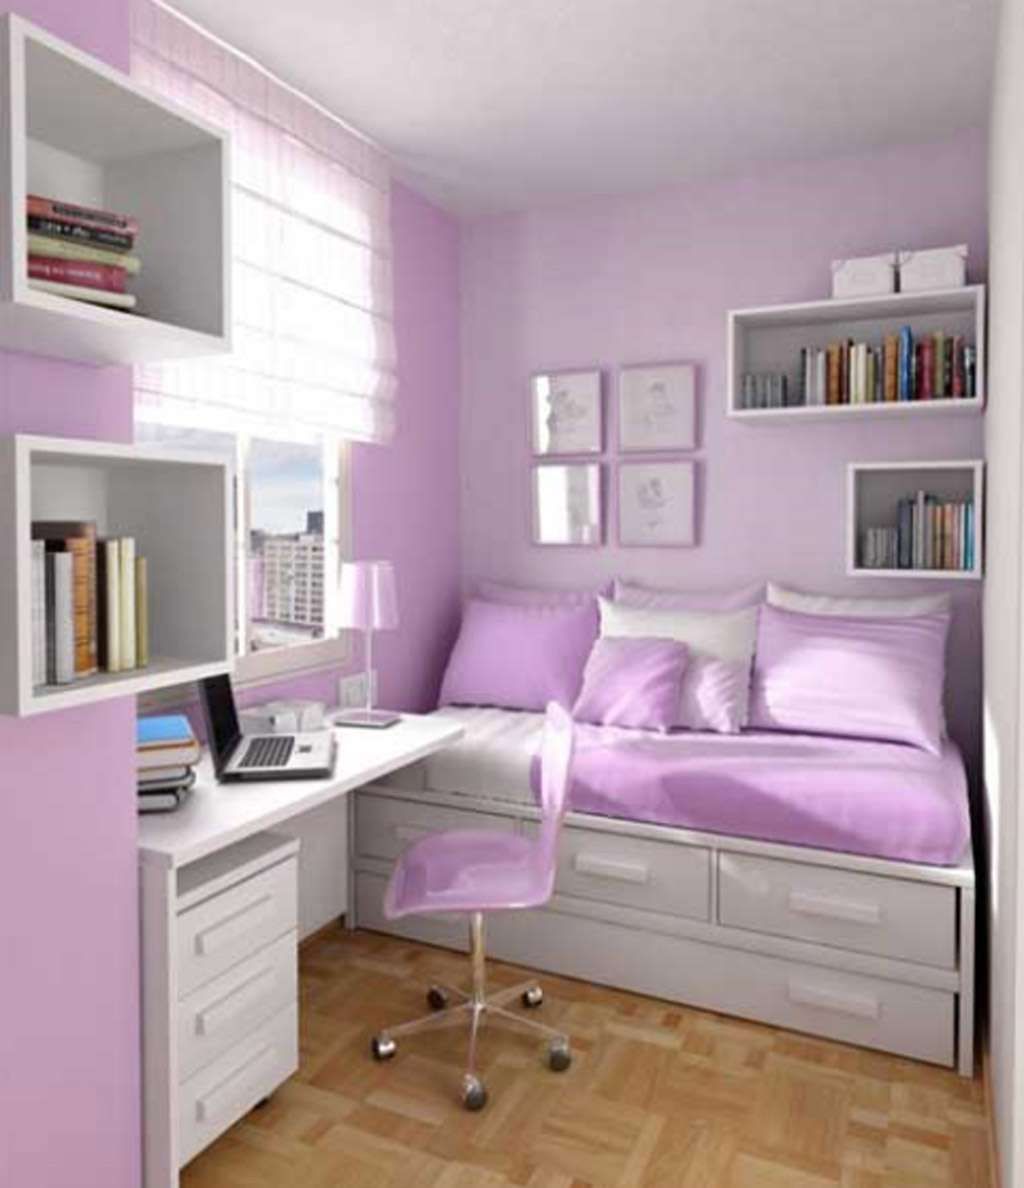 Simple bedroom design for girls - Bedroom Delightful Girl Bedroom Ideas With Awesome Day Bed In White Bed Frame On Combined Soft Light Purple Pillows And Beautiful White Wood Study Table